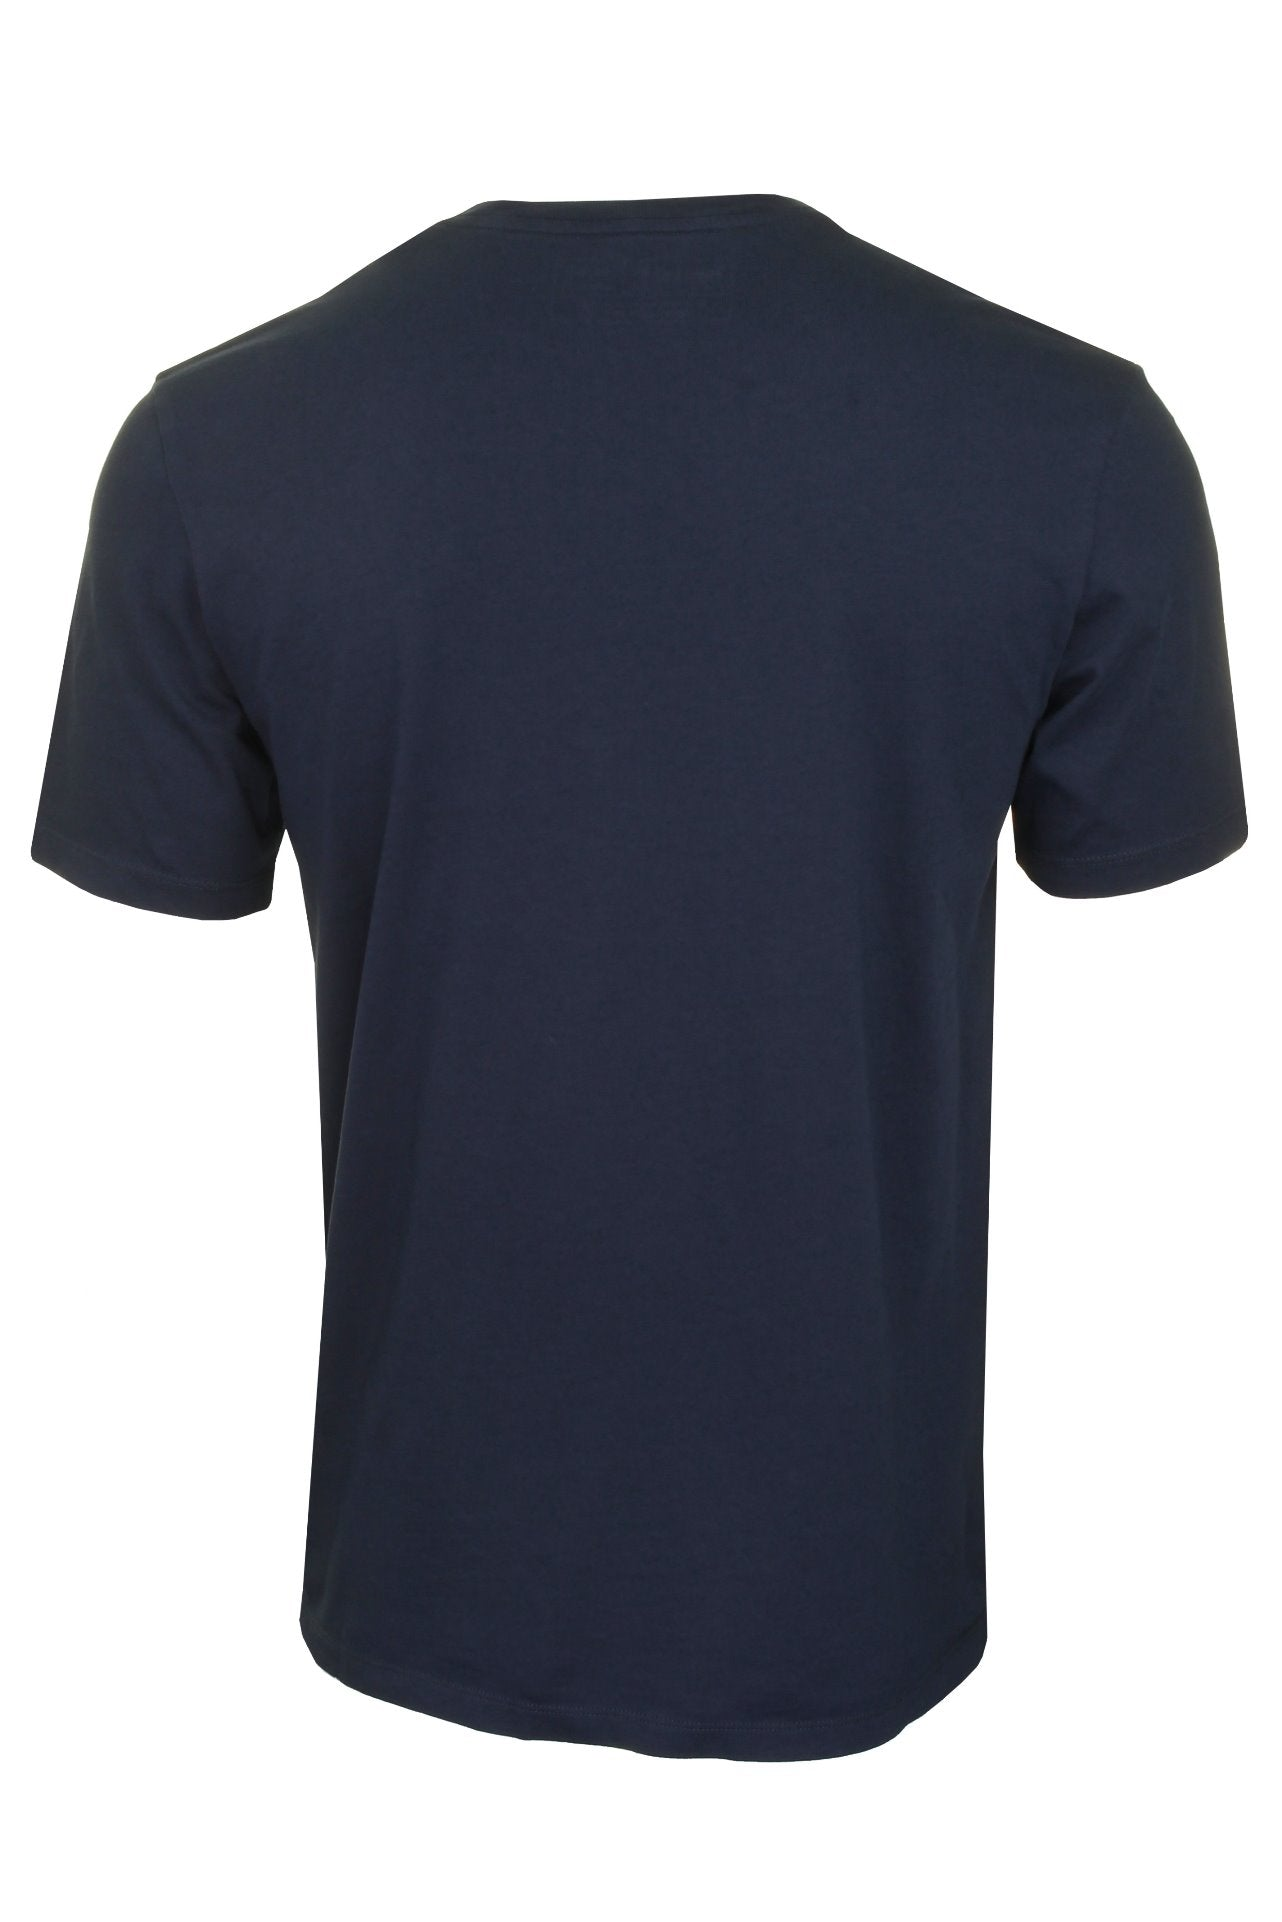 Timberland 'Kennebec River Tree Logo' T-Shirt - Short Sleeved_02_Tb0A2C2R_Dark Sapphire